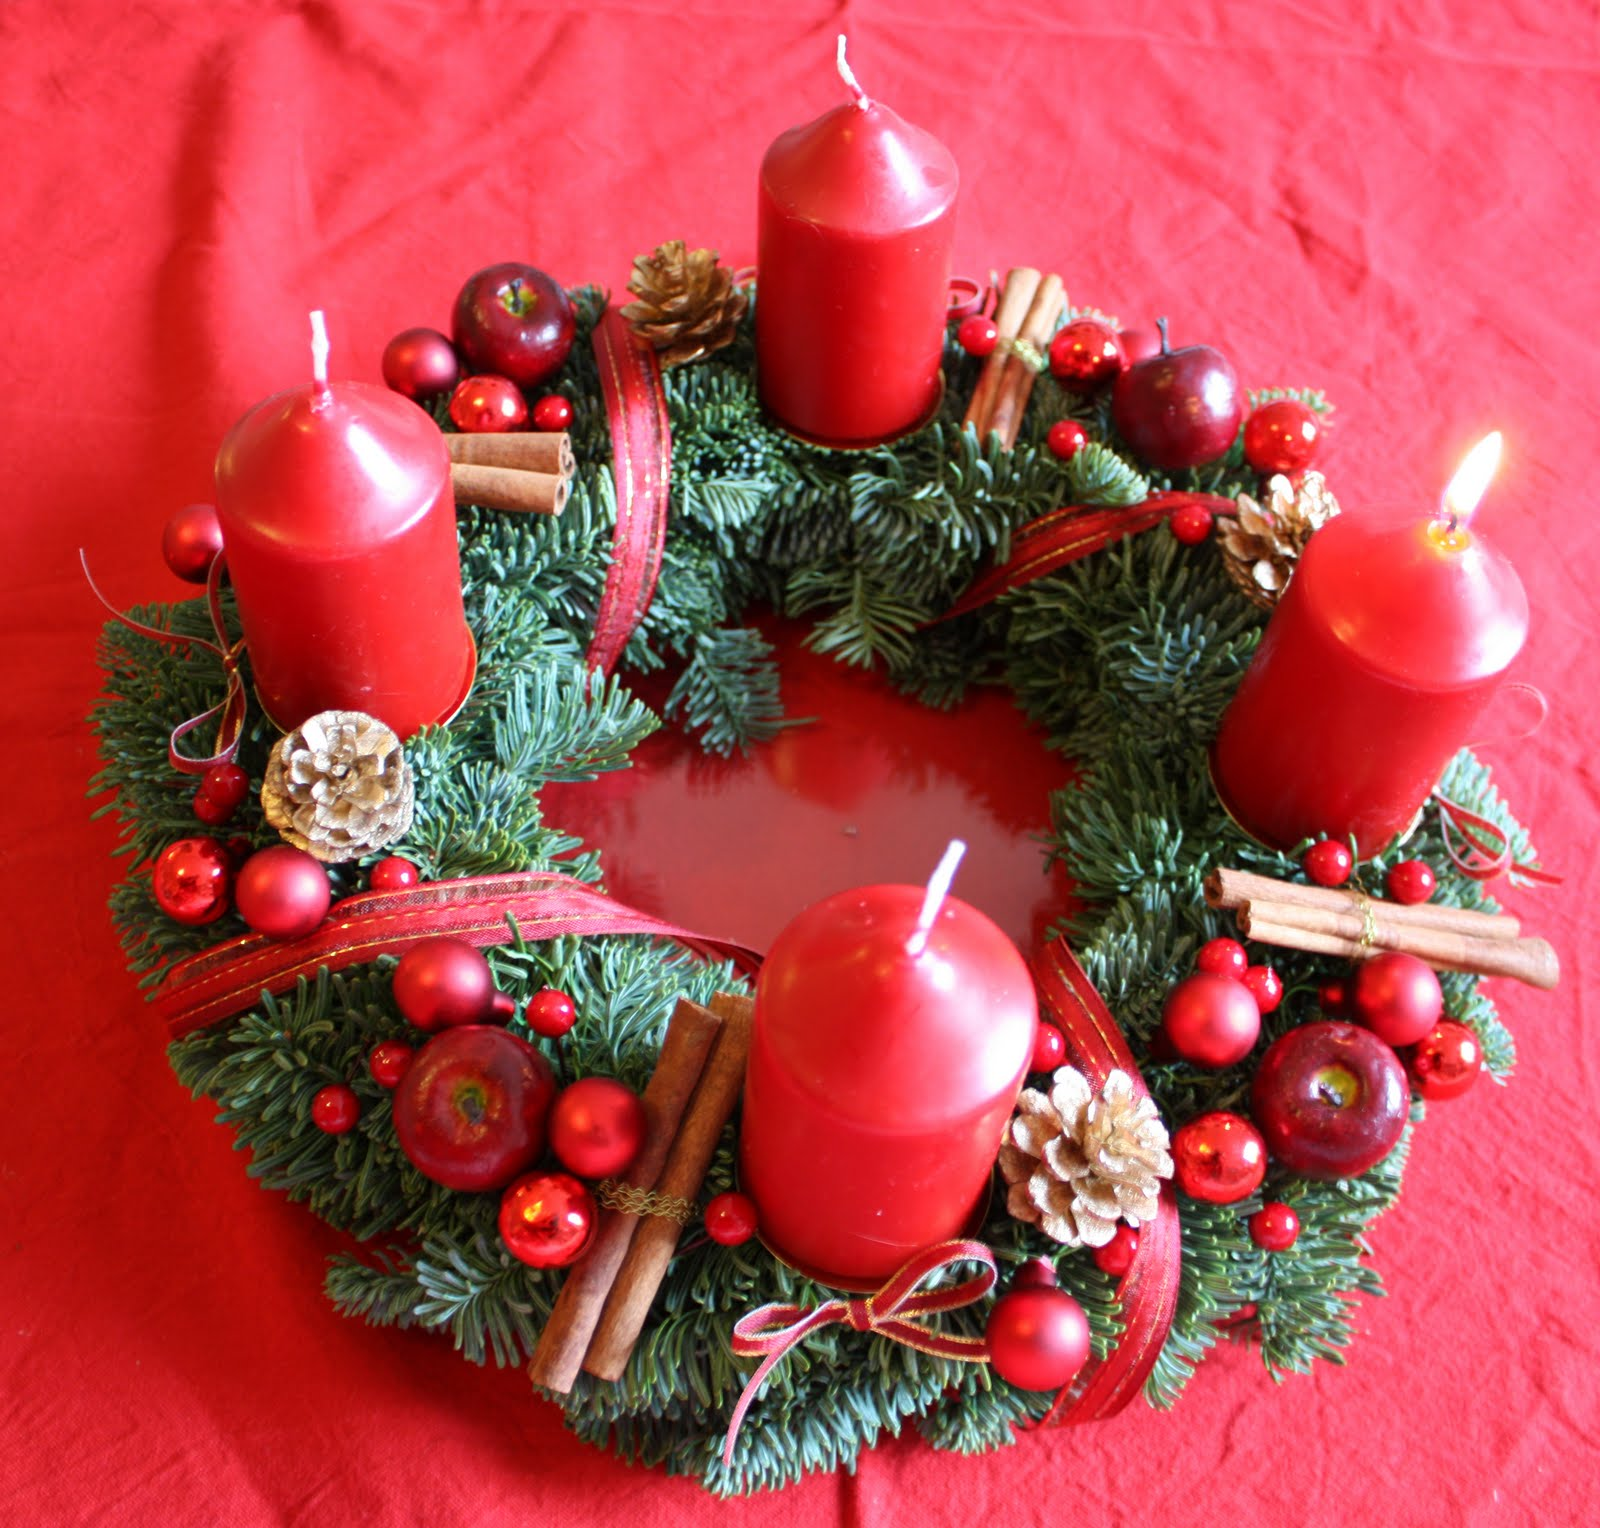 Advent Wreath Decorations Christmas Around The World Thinglink